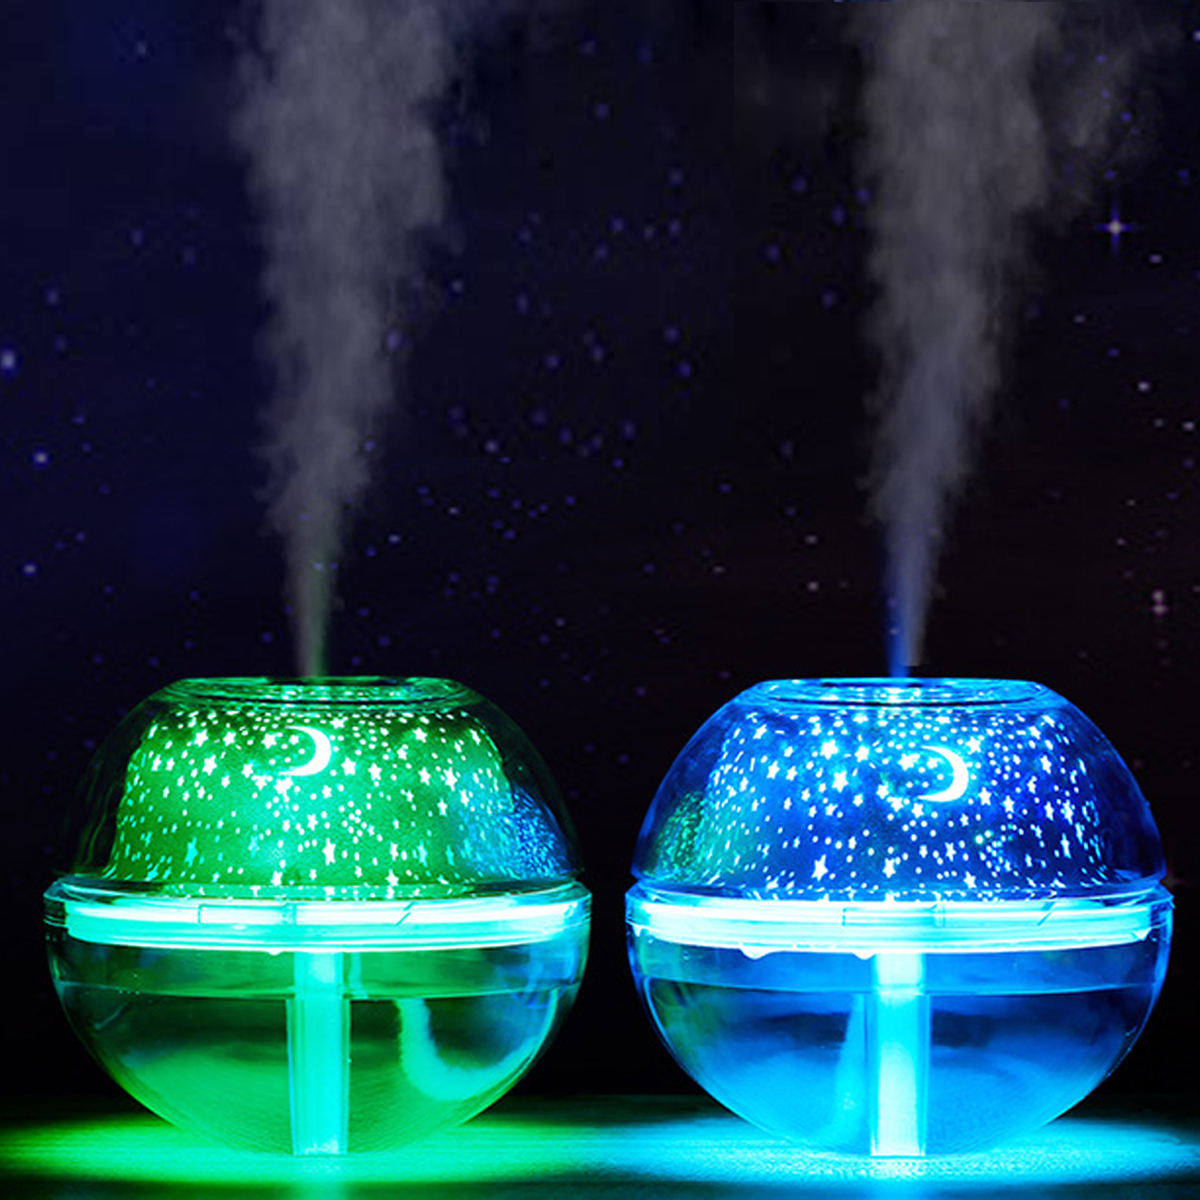 Light Projector 500ml 7 Color Crystal Led Light Projector Air Humidifier Usb Essential Diffuser Aromatherapy Purifier